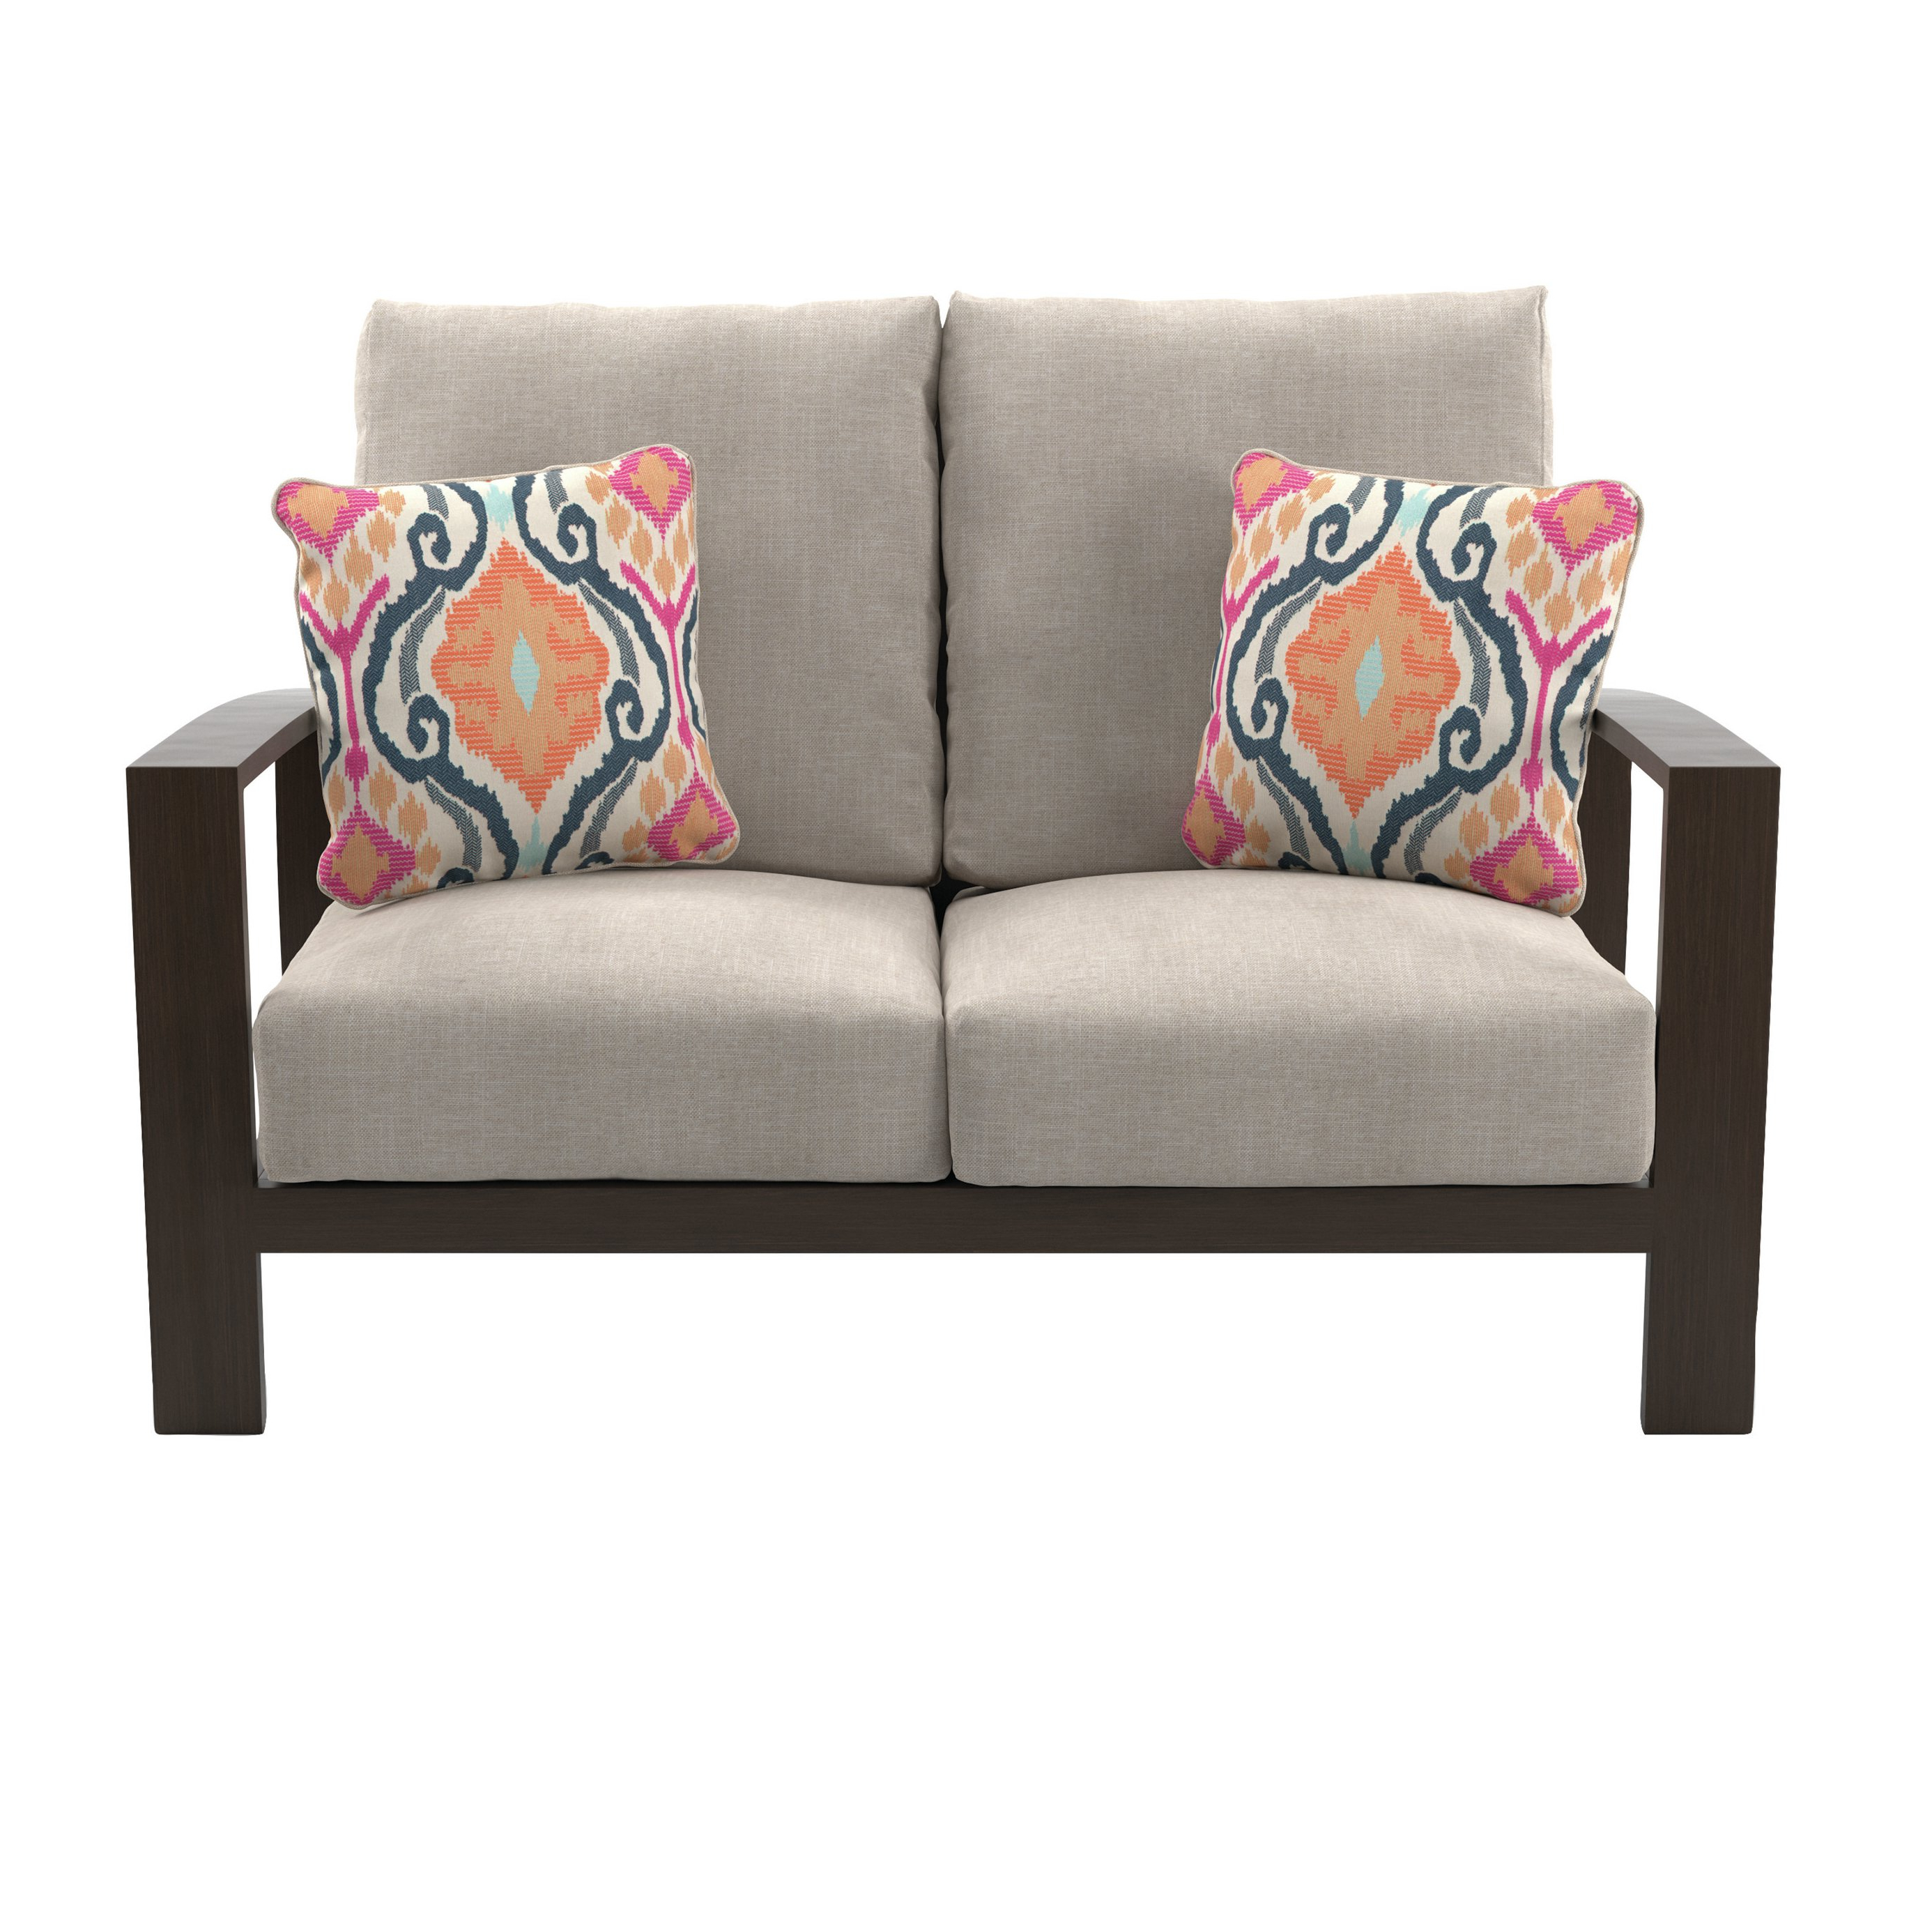 Trendy Loggins Loveseats With Cushions Regarding Jay Loveseat With Cushions (View 20 of 20)